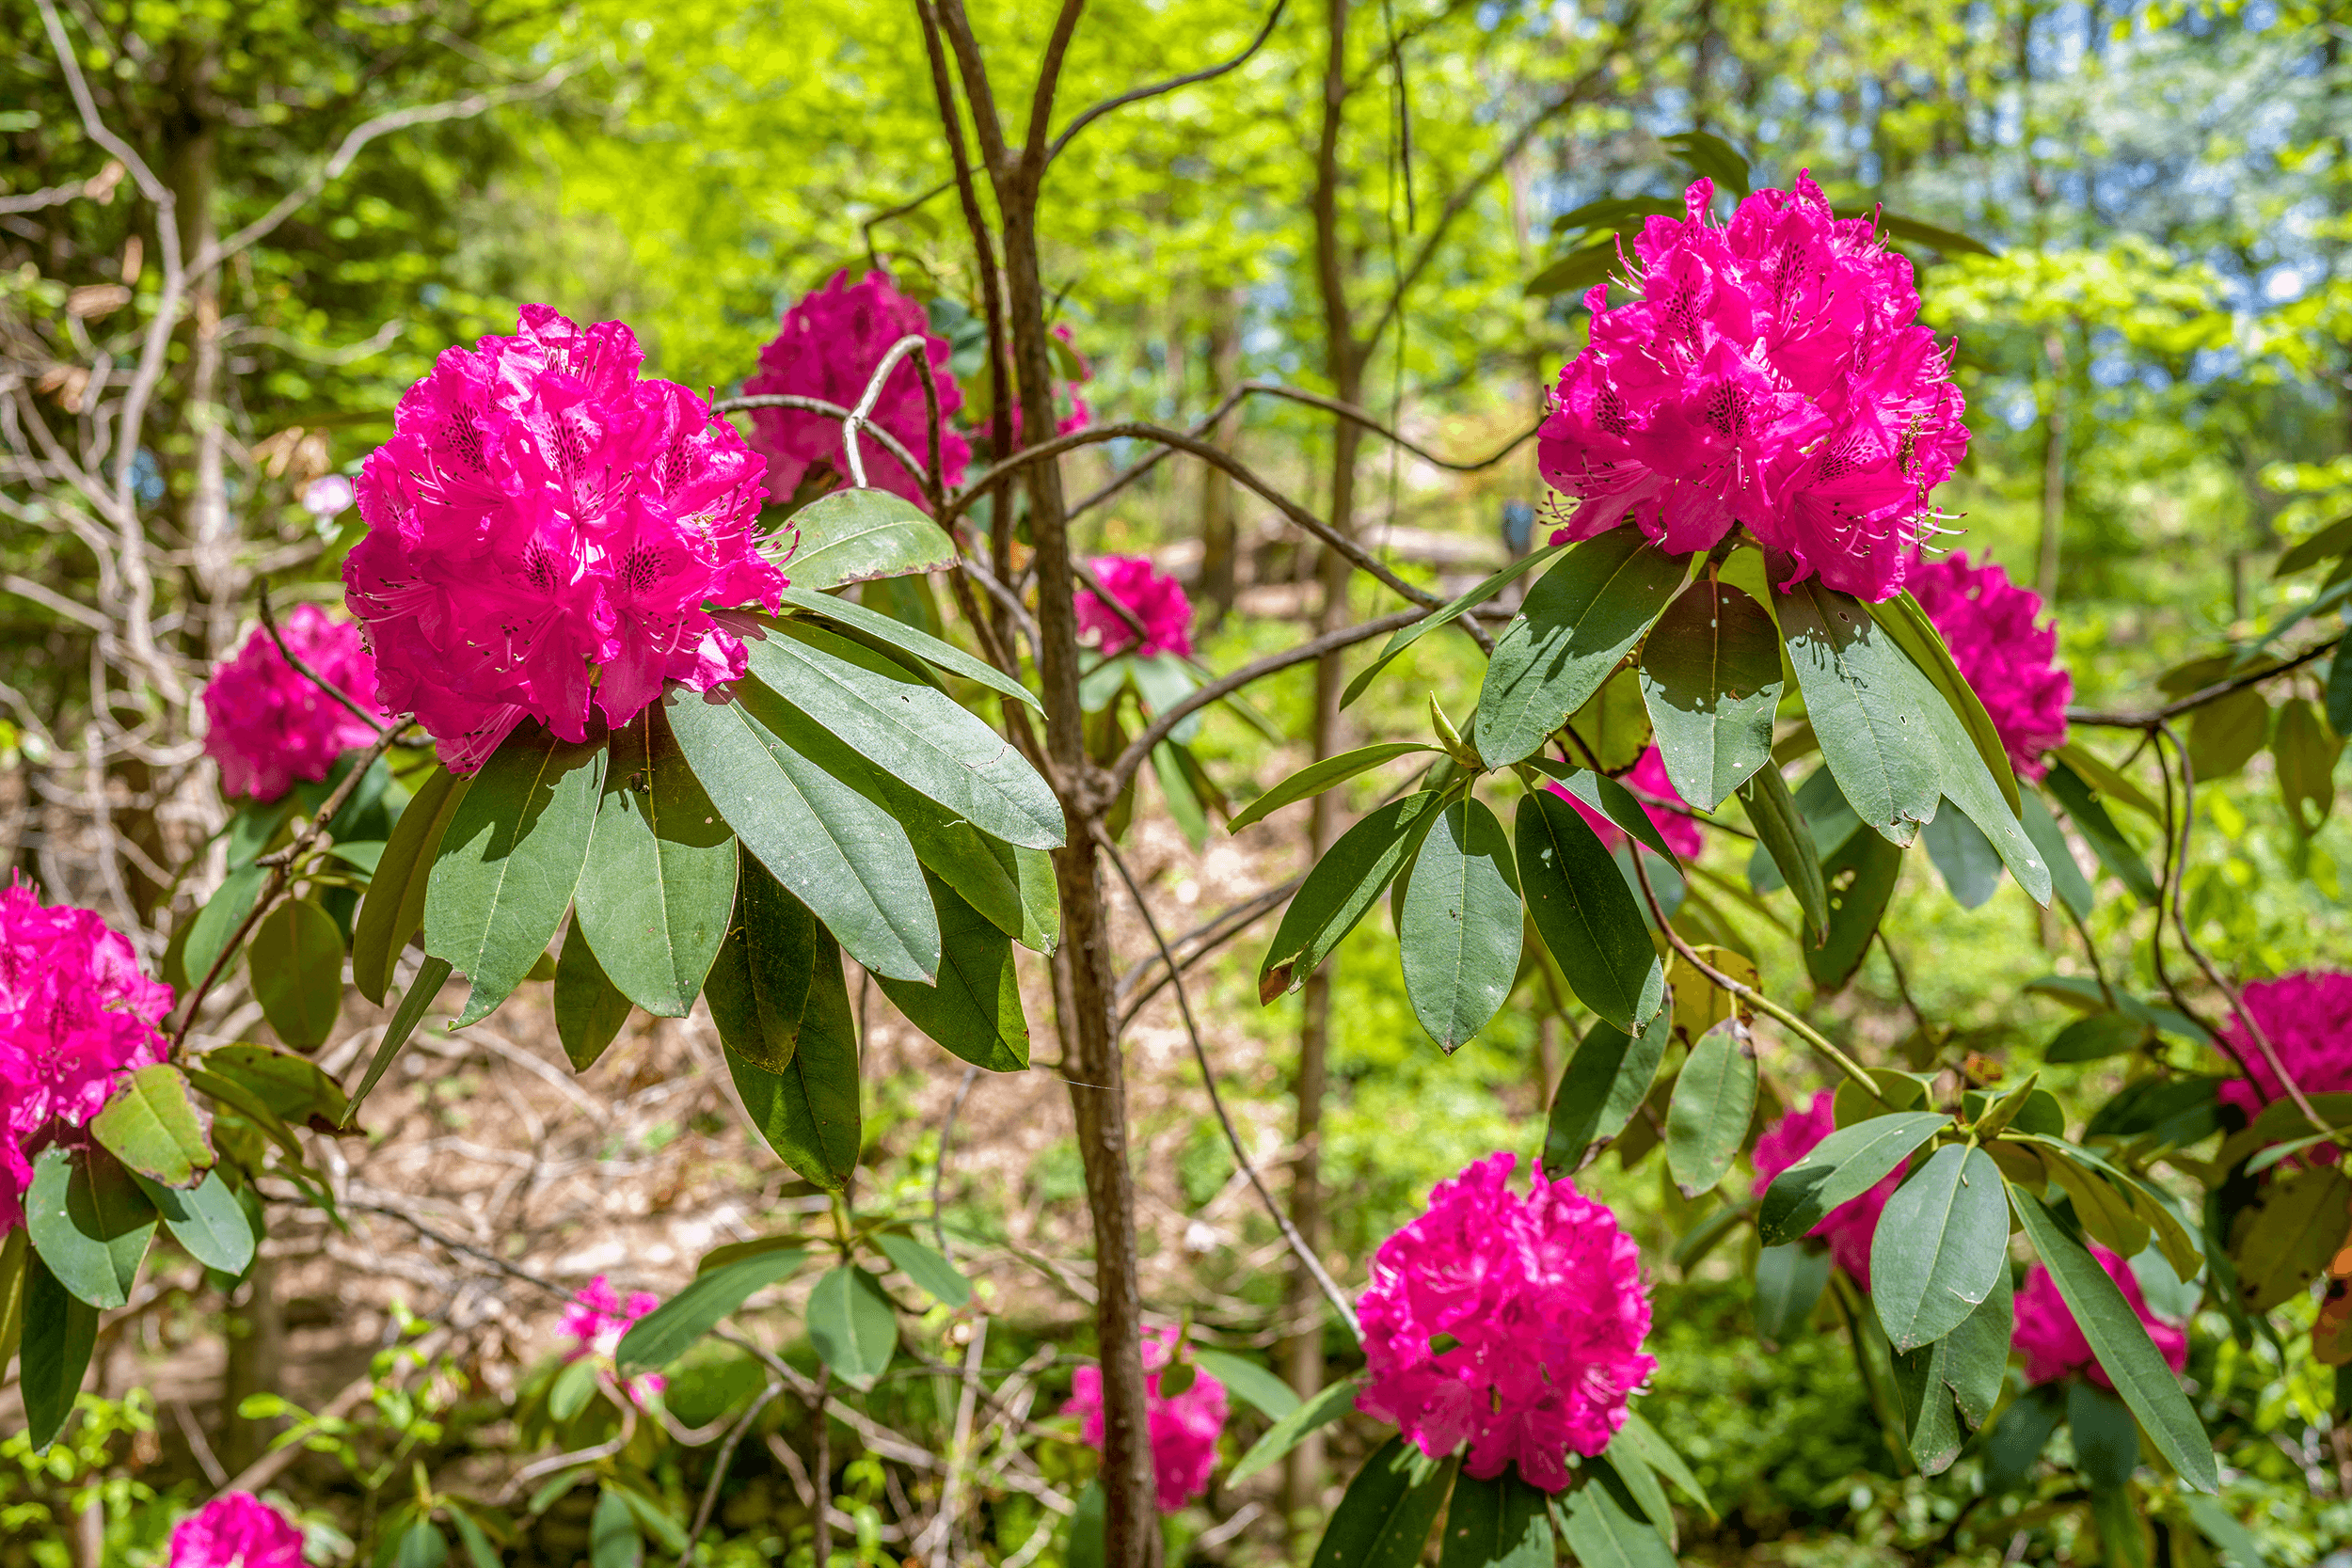 The Botanical Gardens at UNC is located on the university campus. Secluded from the hectic university life, the  VanLandingham Glen  is an oasis of tranquility. The Glen features a large variety of rhododendrons and local plants.